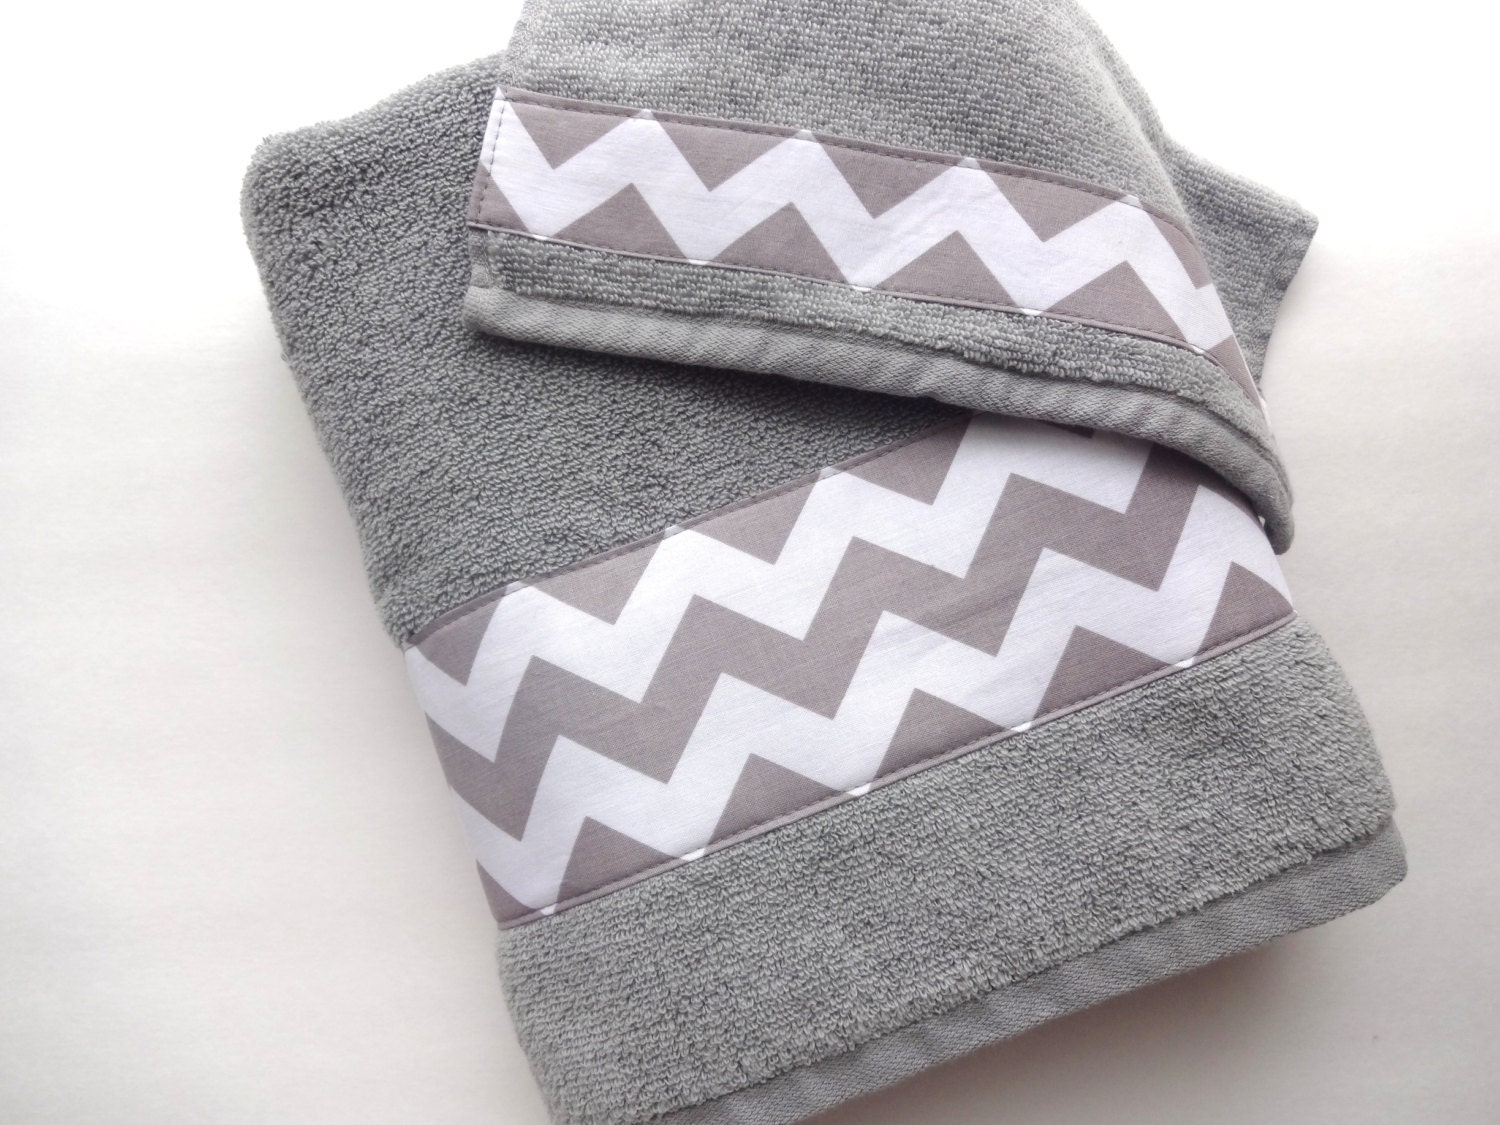 Grey chevron towels towel hand towel bath towel grey for Grey and white bathroom accessories